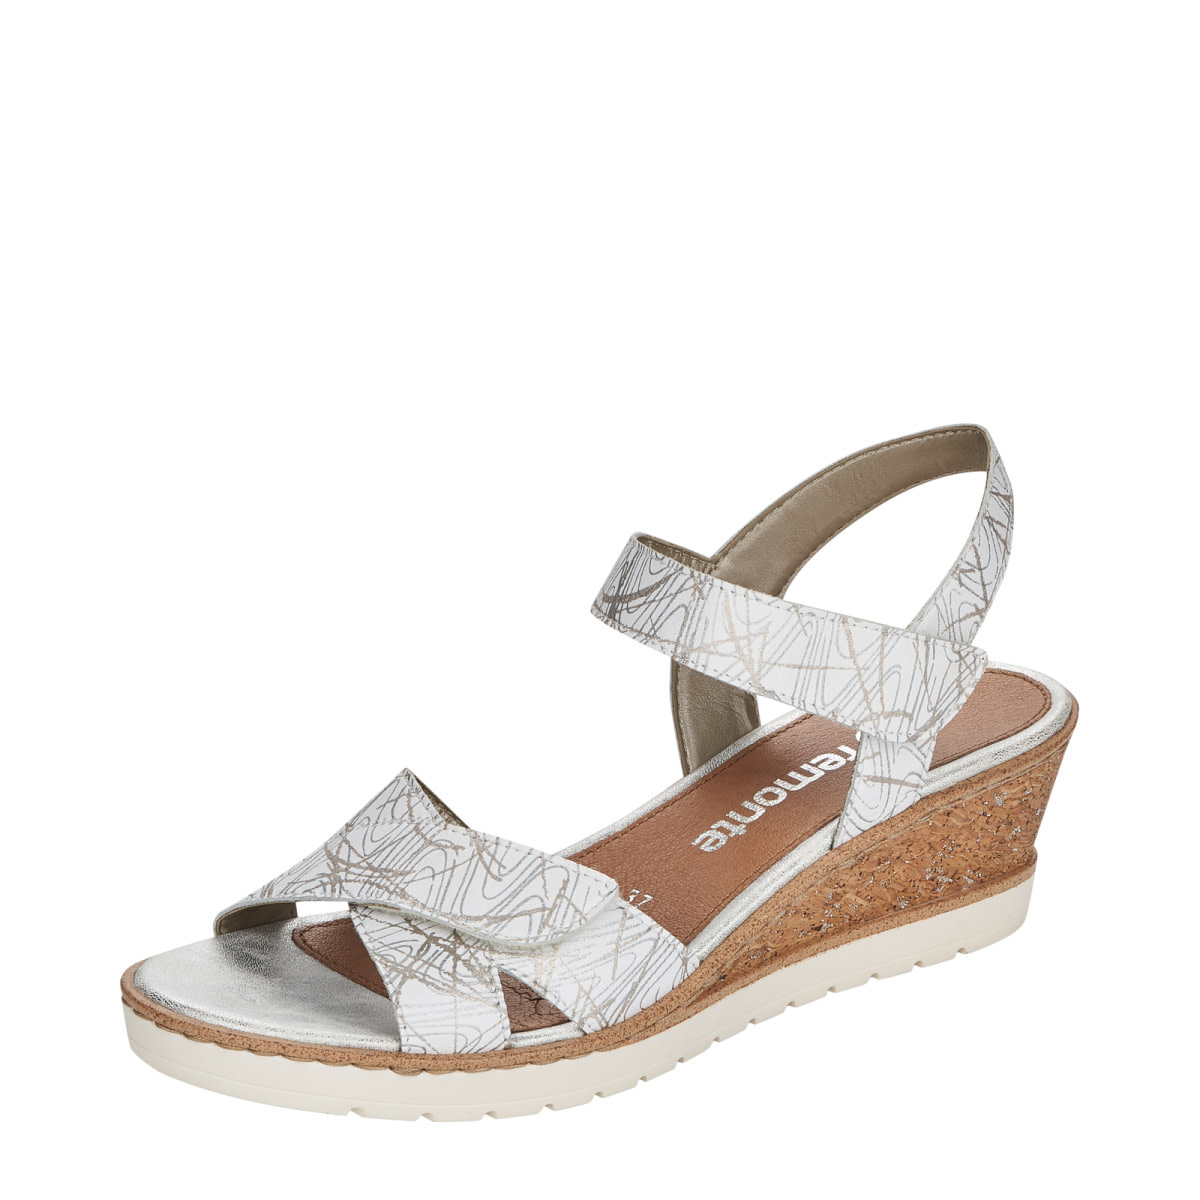 Remonte Remonte R6252-80 Wedge Sandal White